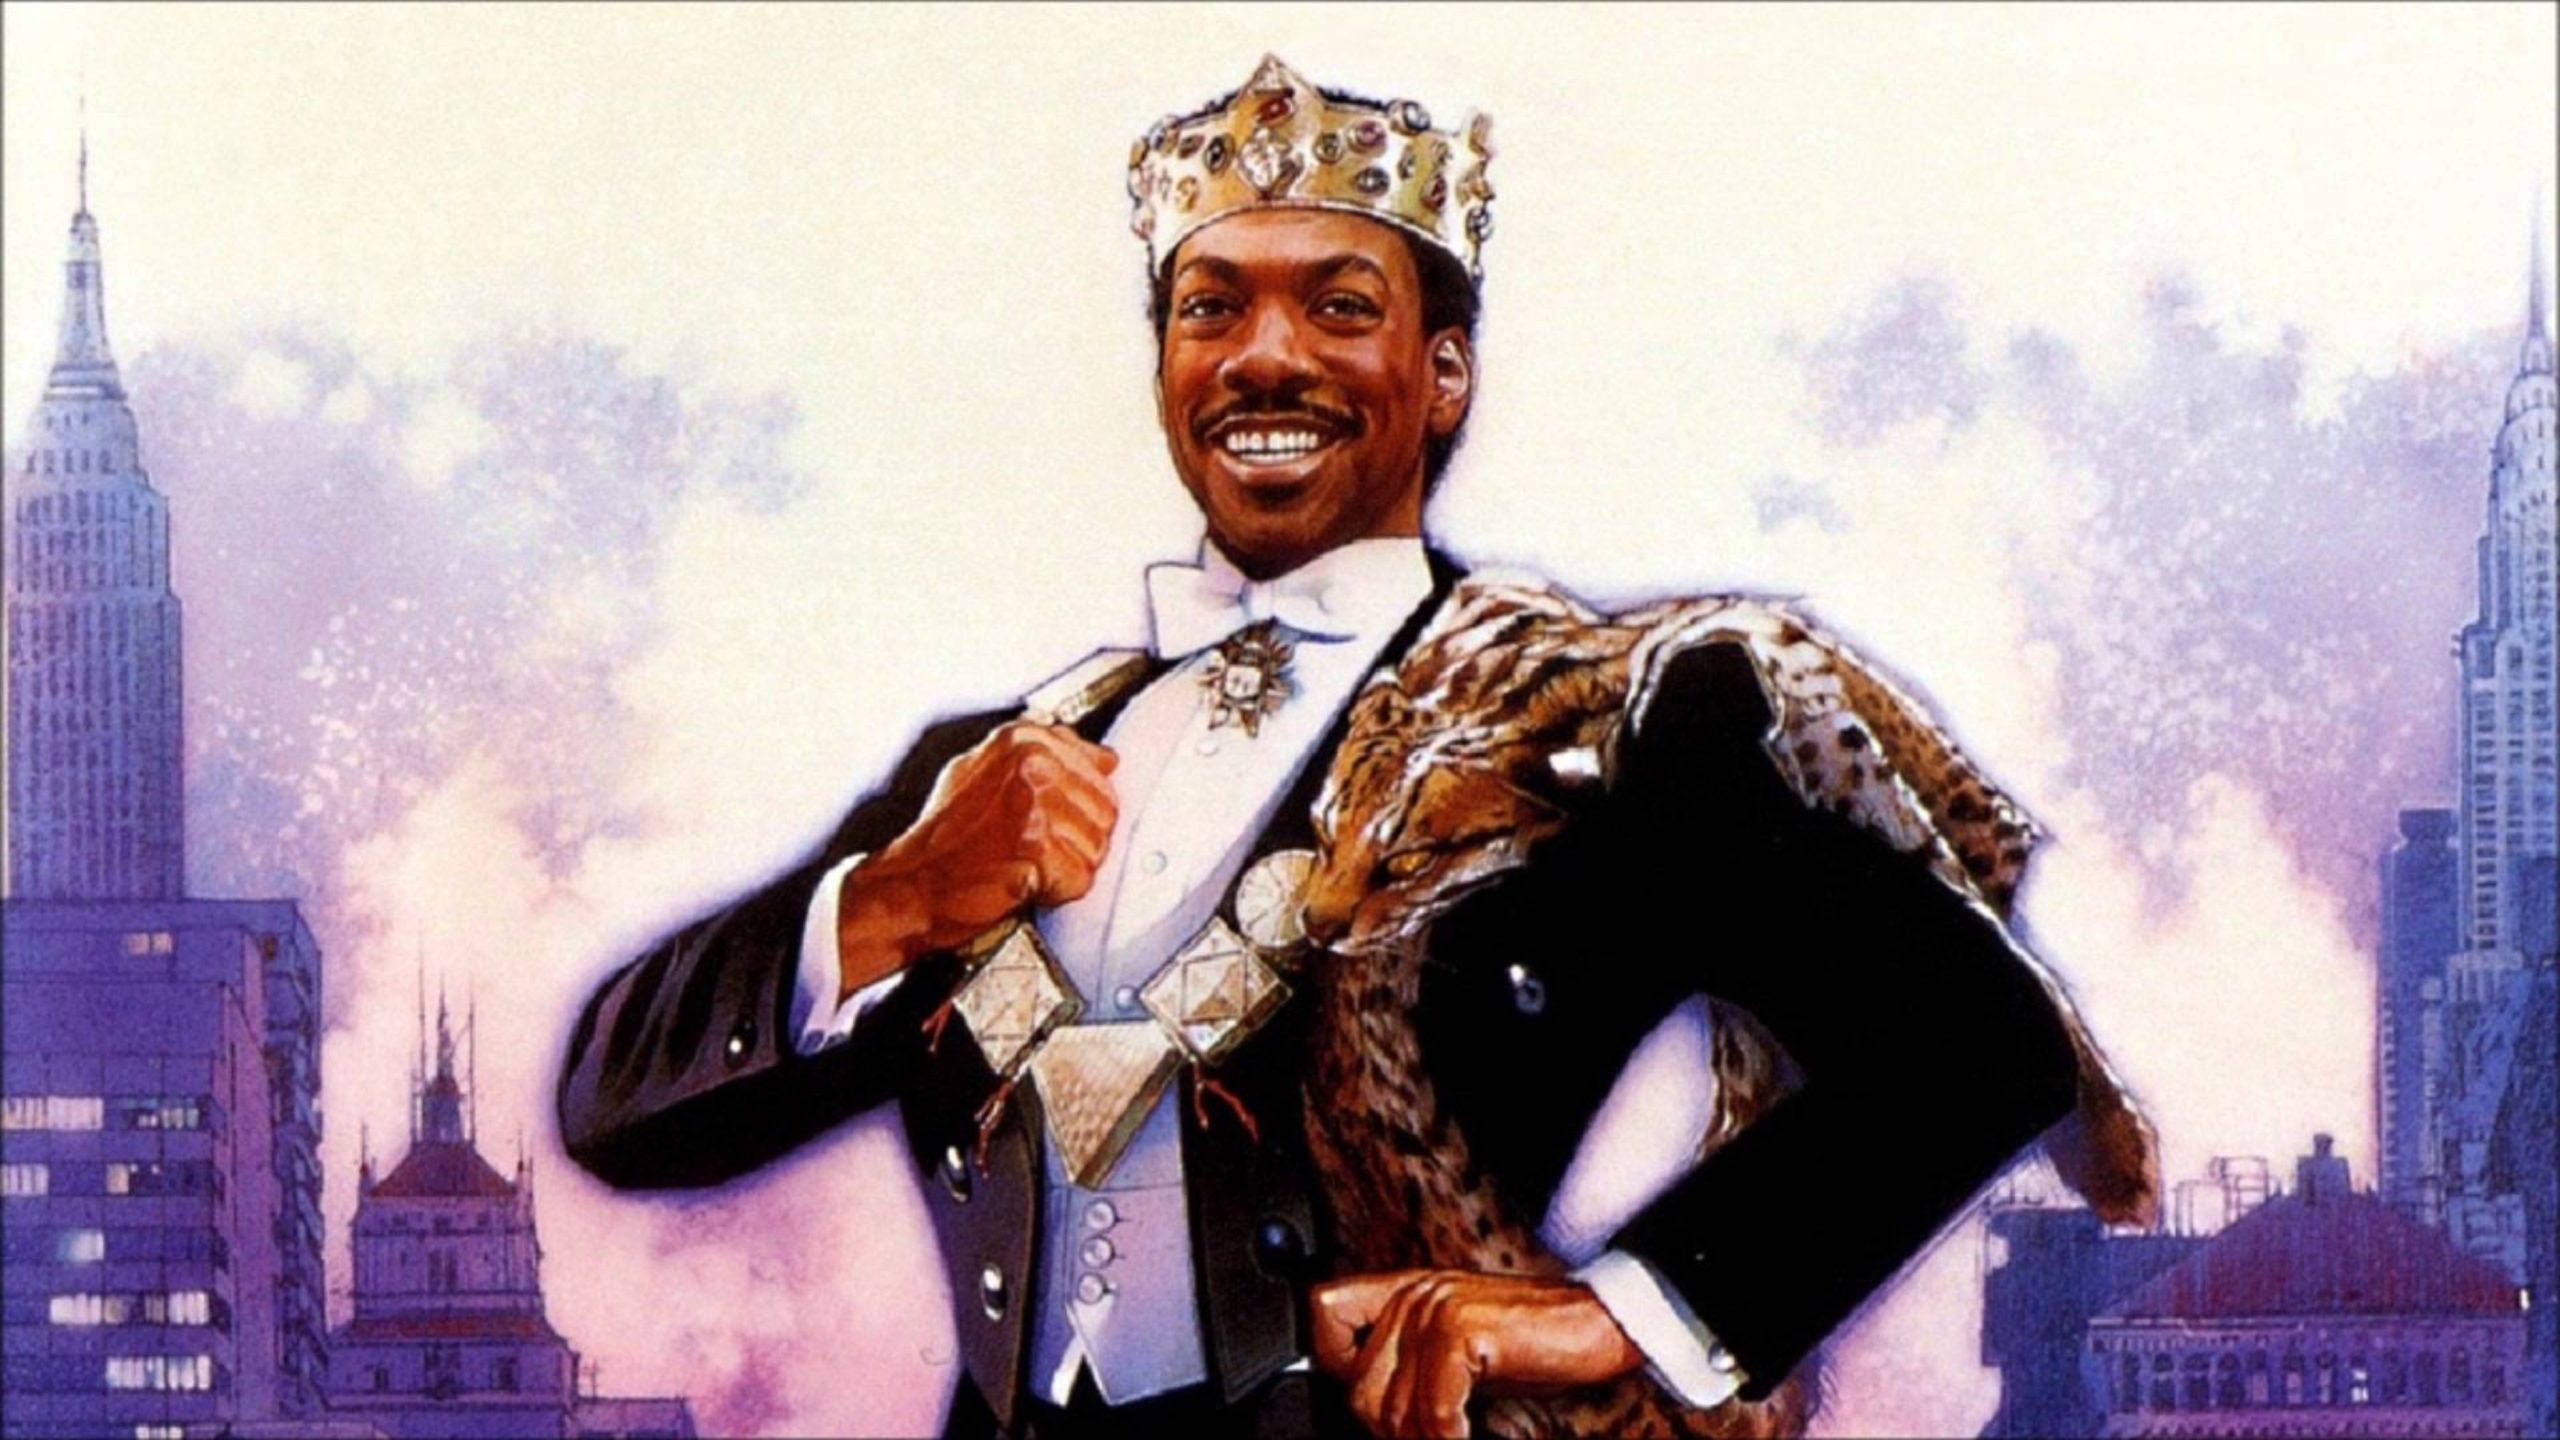 The Sequel to Coming to America Will Be Released on Amazon in 2021